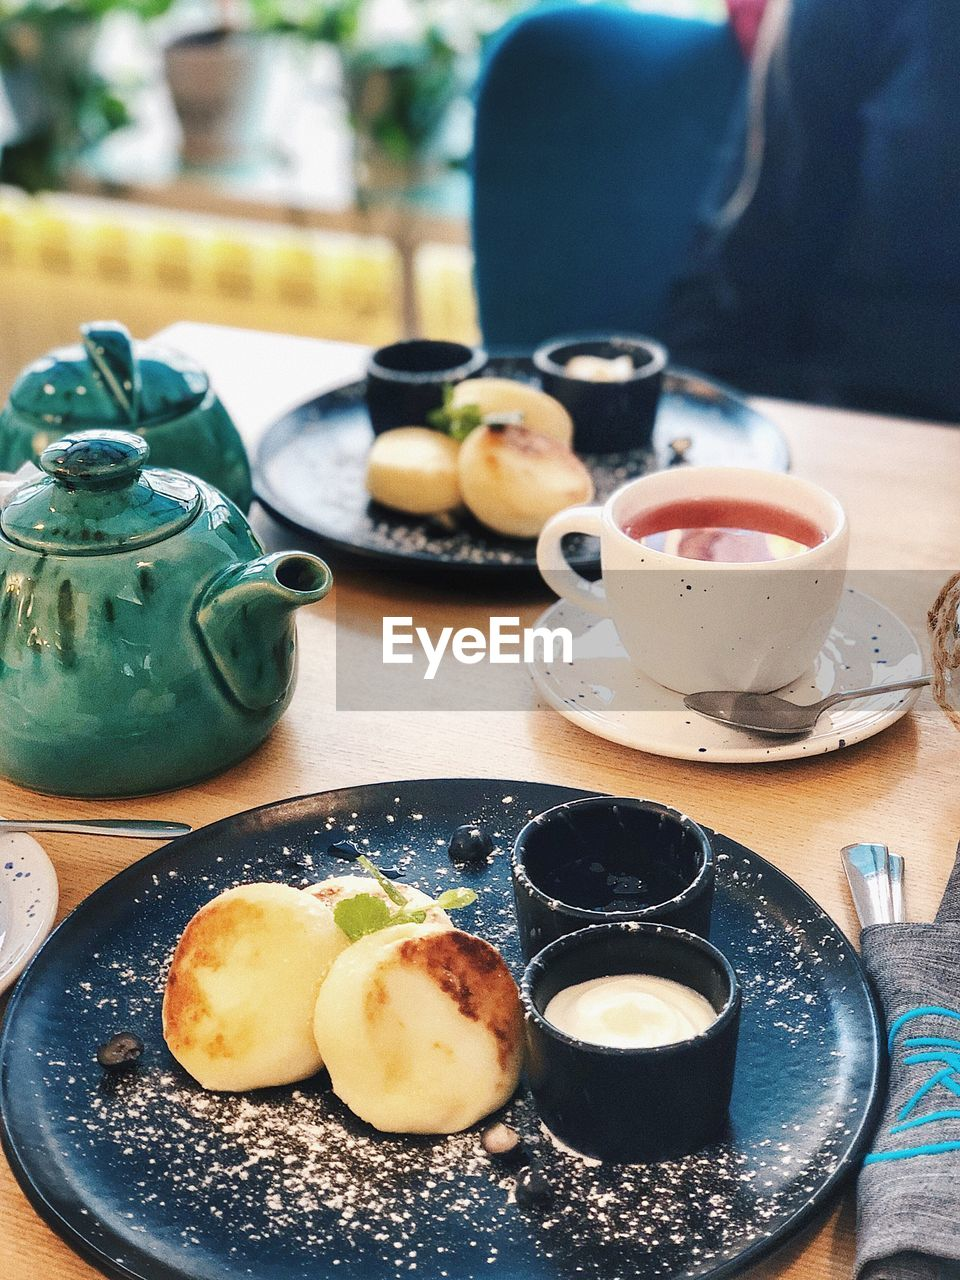 food and drink, table, food, drink, cup, freshness, refreshment, mug, hot drink, tea, still life, coffee, plate, indoors, tea - hot drink, healthy eating, coffee - drink, coffee cup, close-up, tea cup, breakfast, teapot, meal, no people, crockery, non-alcoholic beverage